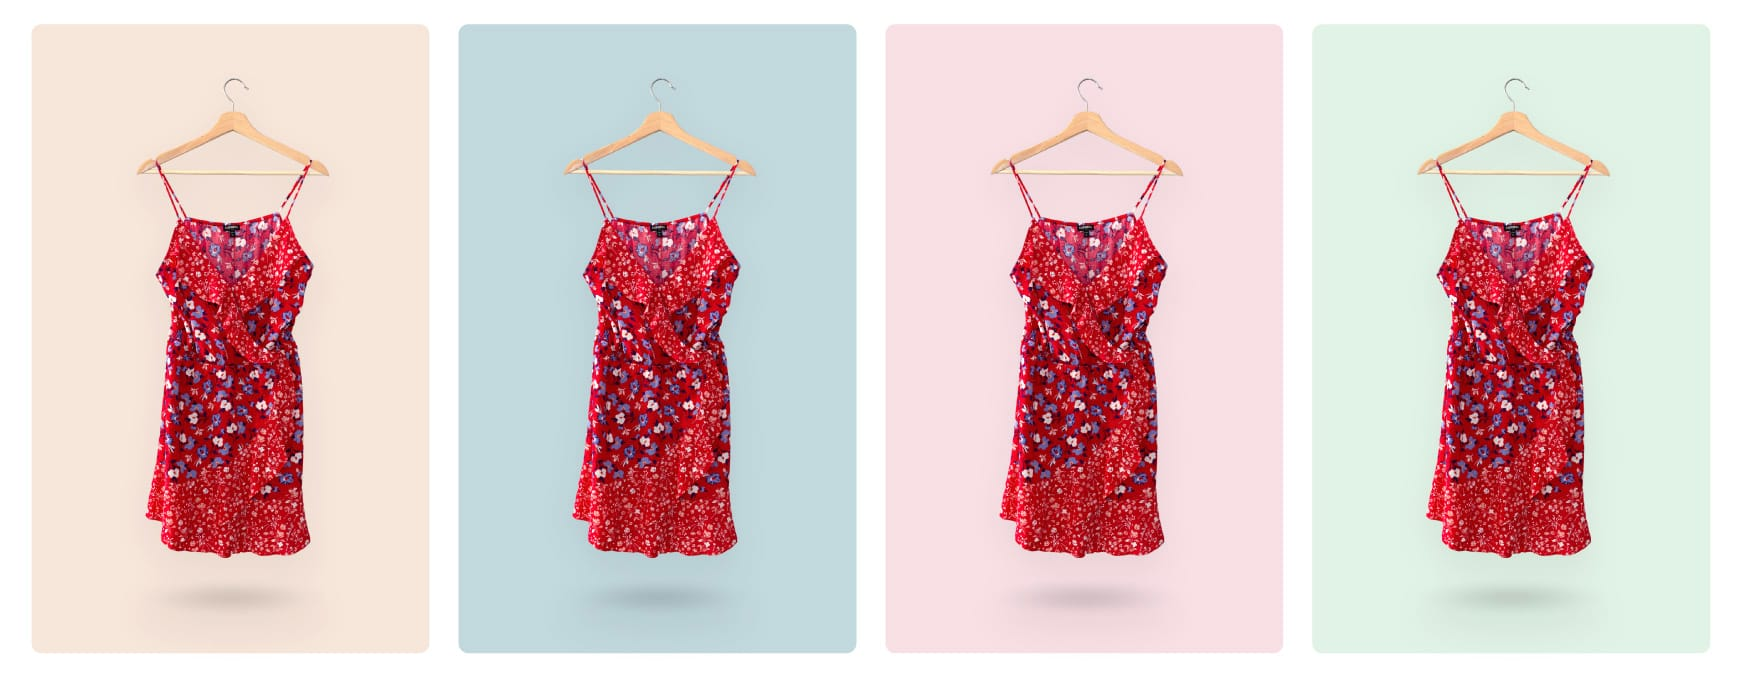 example of a dress product photo with different pastel backgrounds